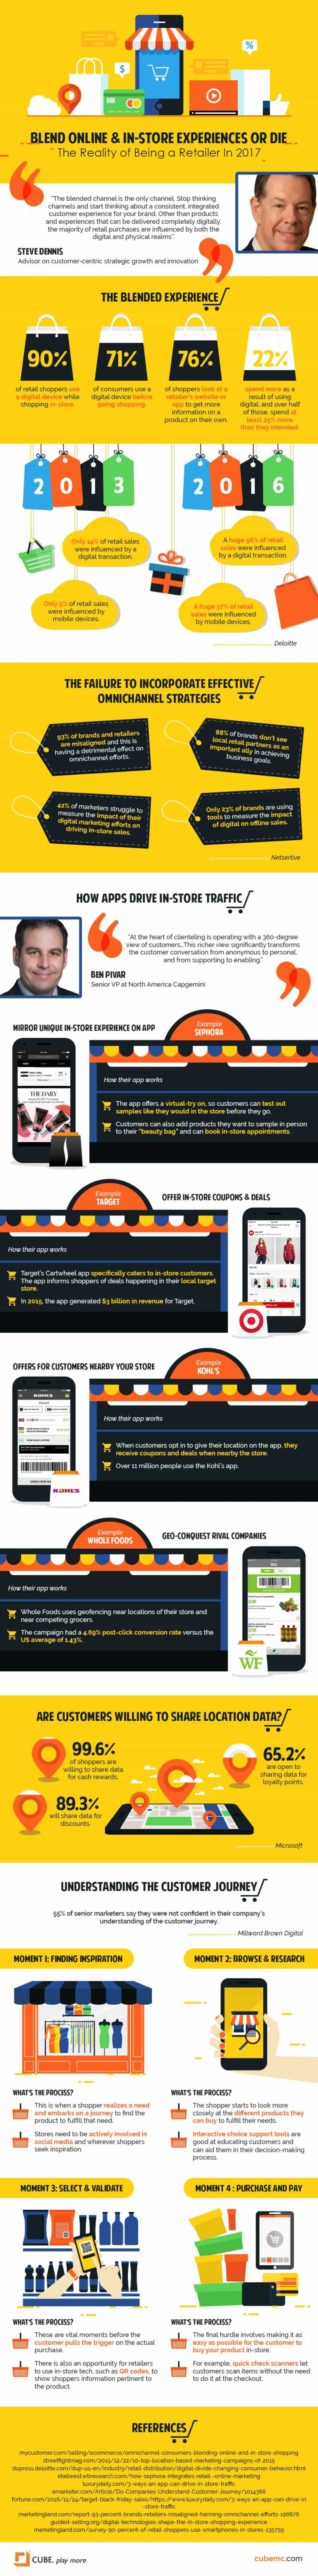 How Smartphones Changed In Store Shopping